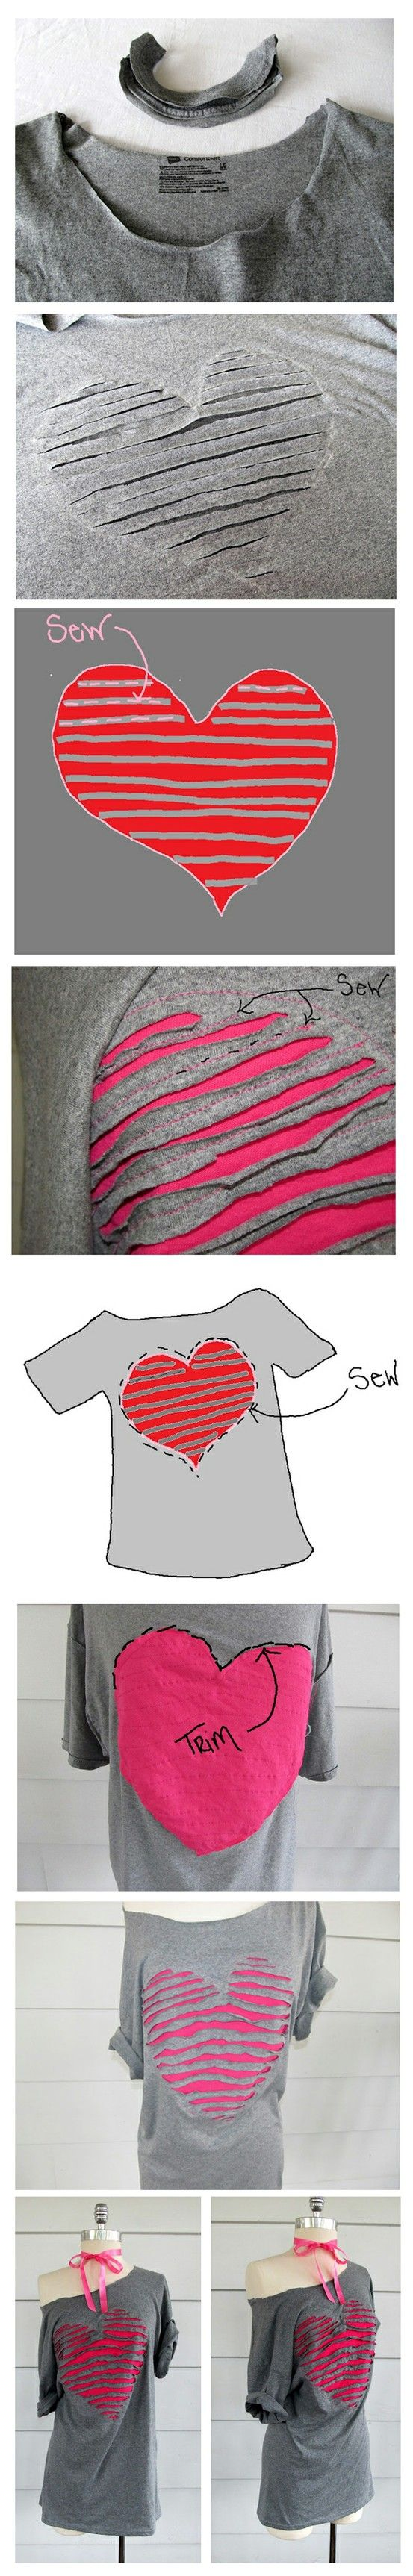 T-shirt refashion: this technique could be used on other projects too! (I would…